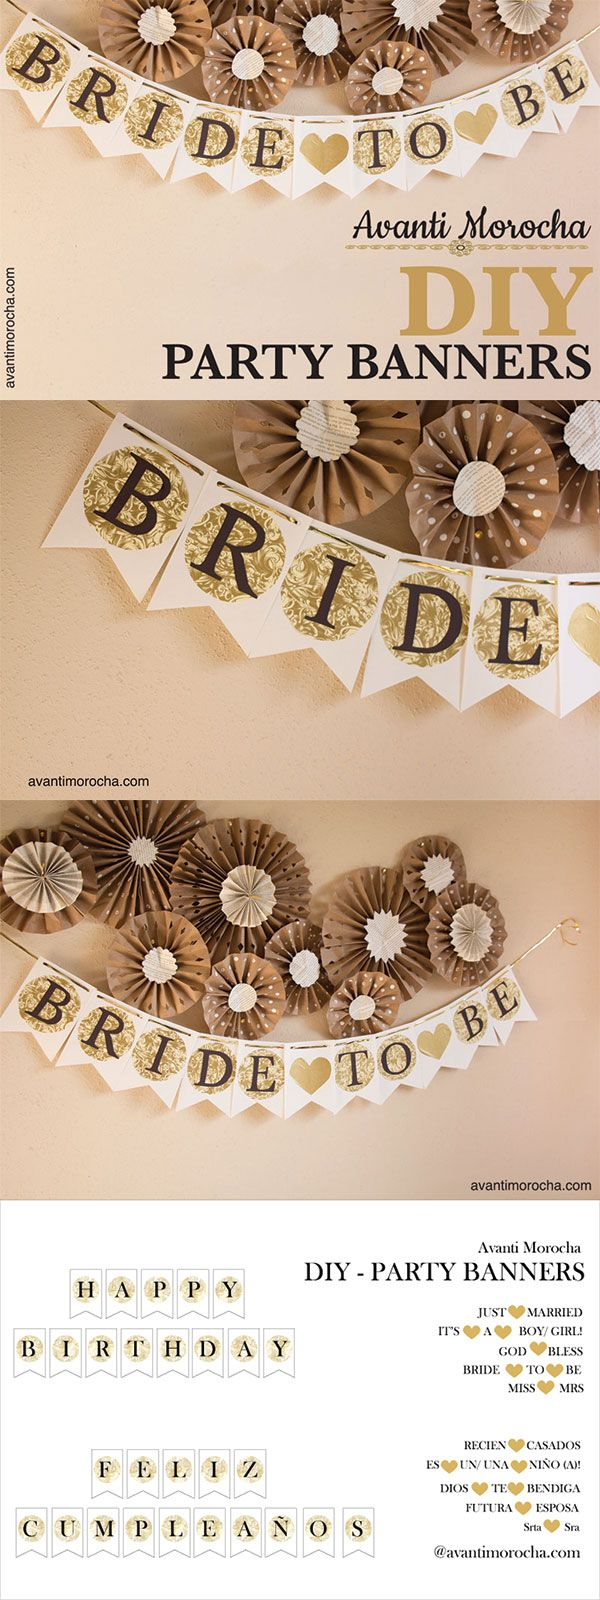 DIY Party Banners / decorations / events / bridal shower, birthday, baptism, weddings, baby showers. Bodas, bautizos, despedida de soltera